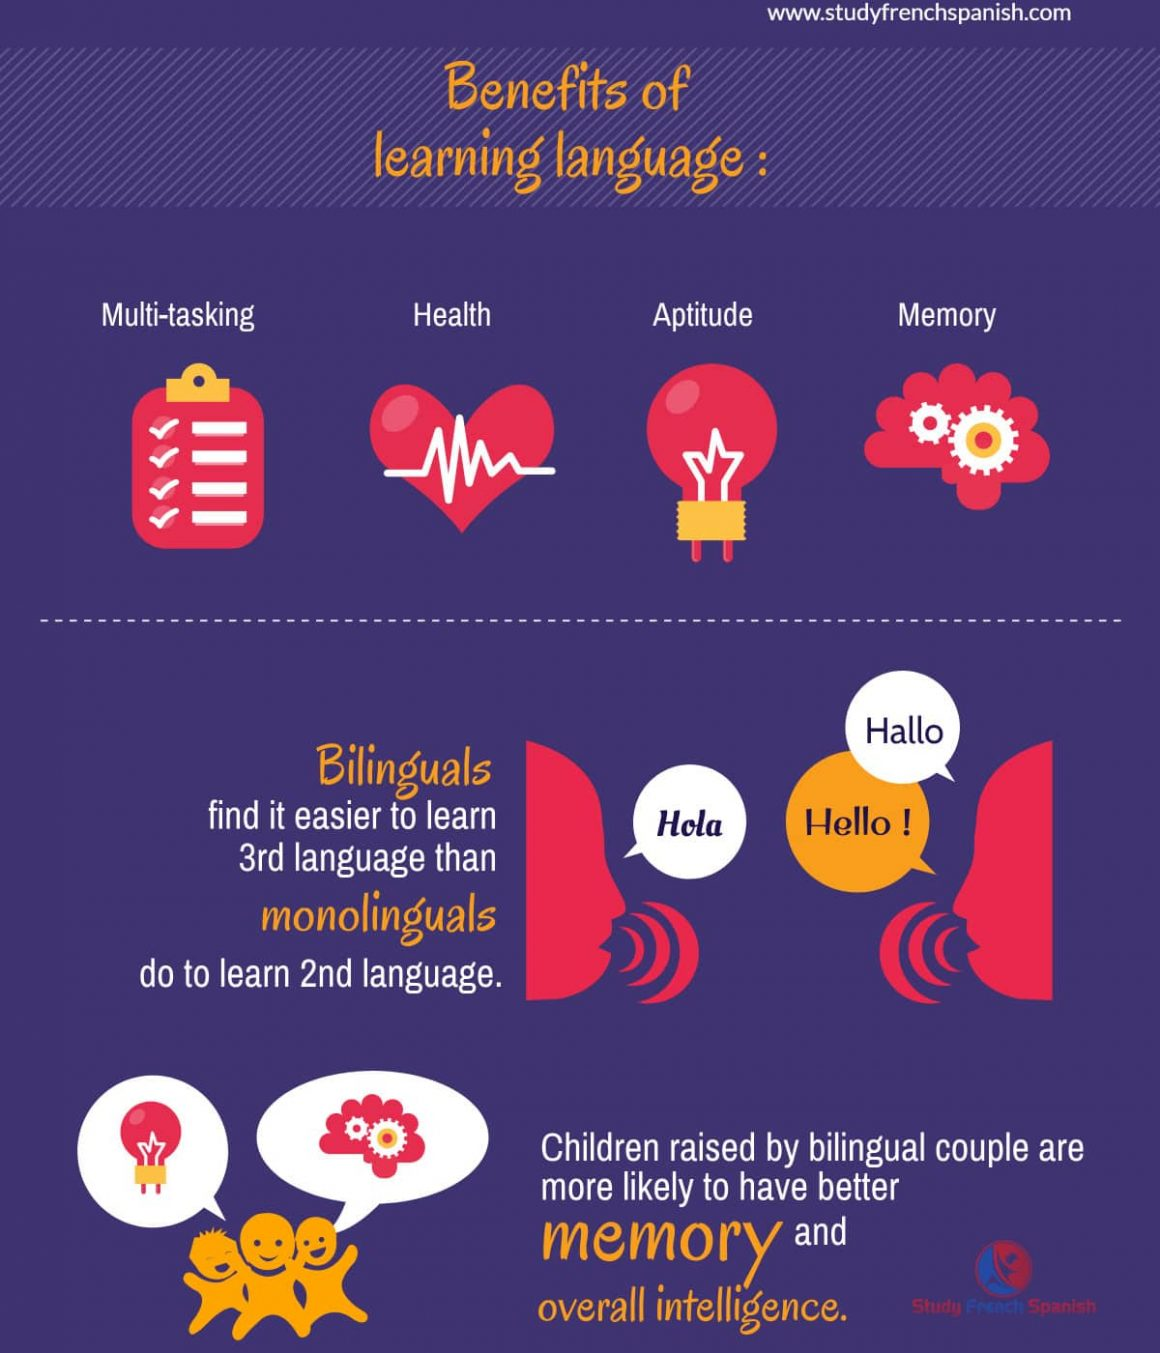 Advantages of learning languages